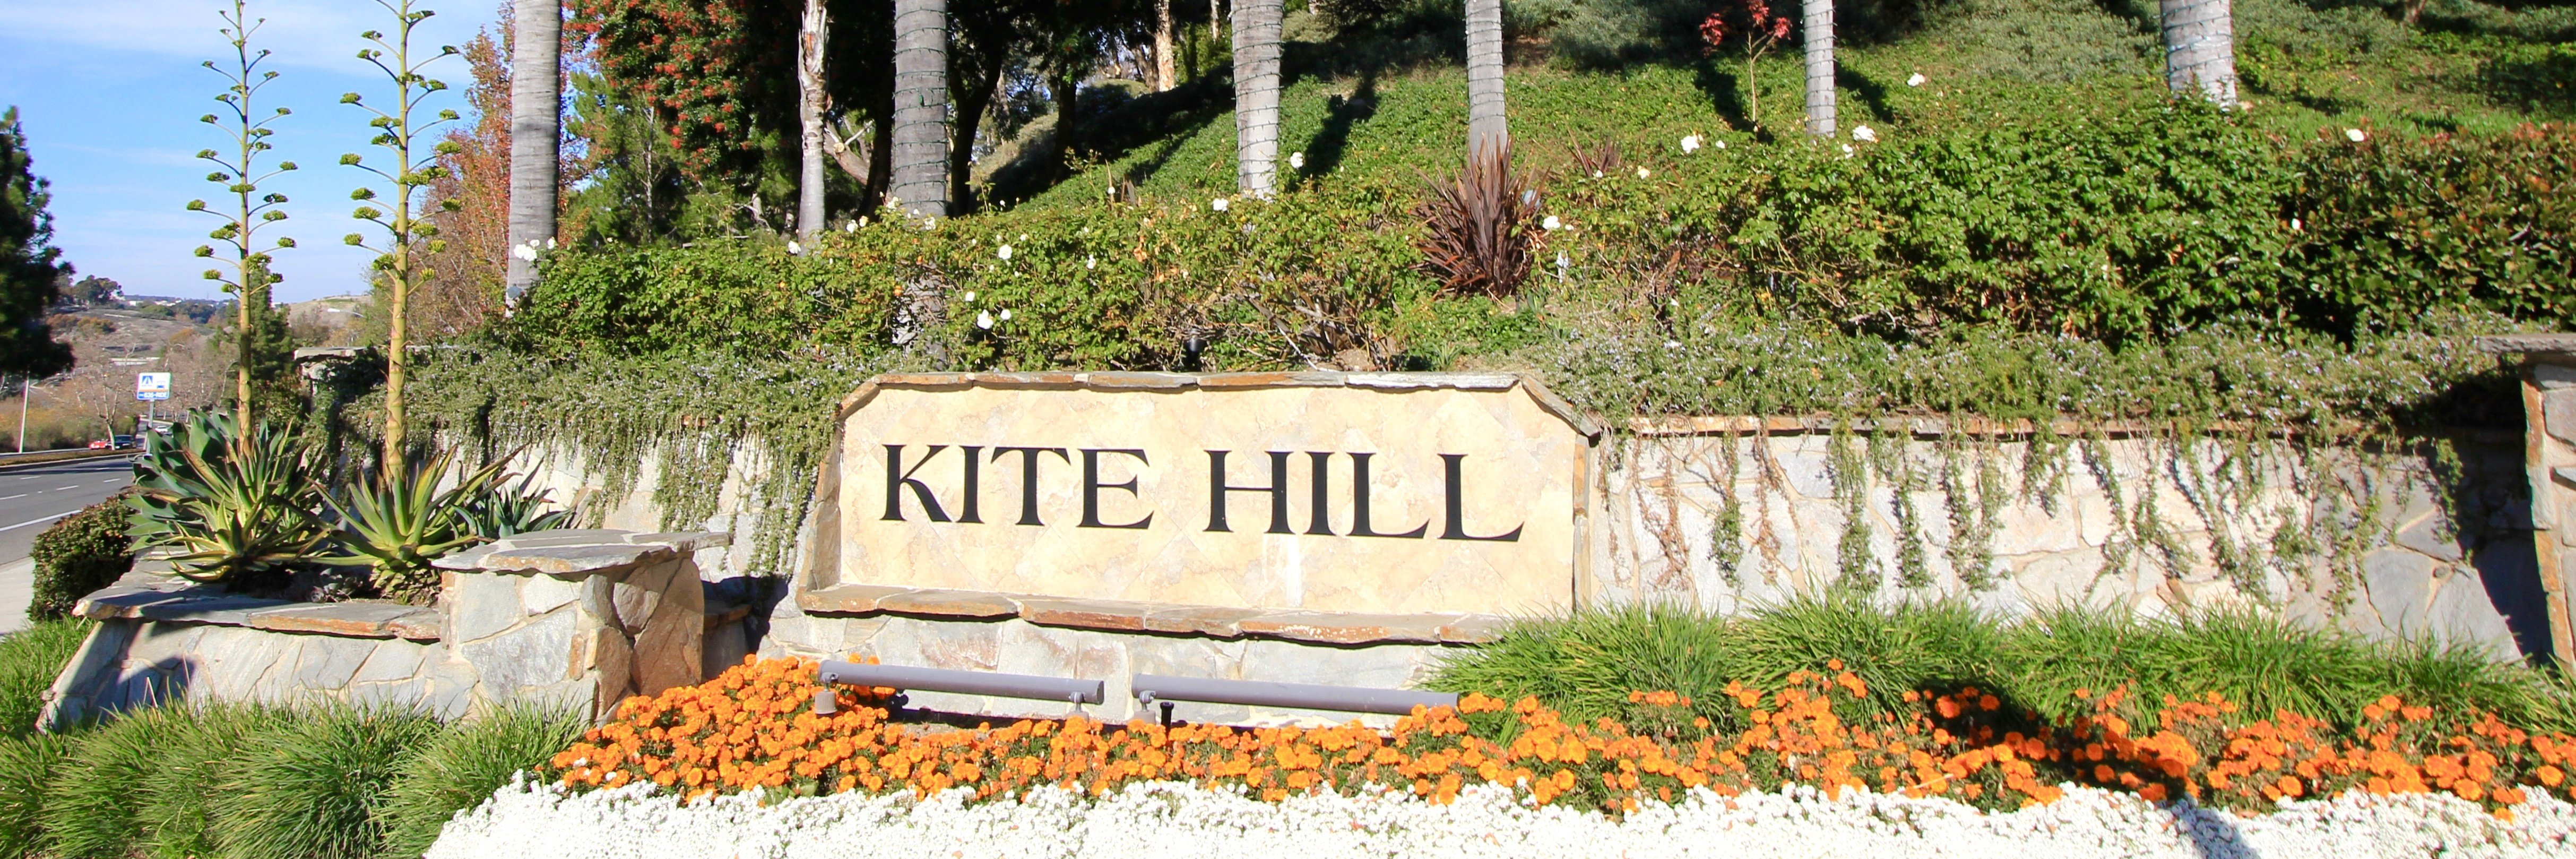 Kite Hill is a neighborhood of homes located in Laguna Niguel California